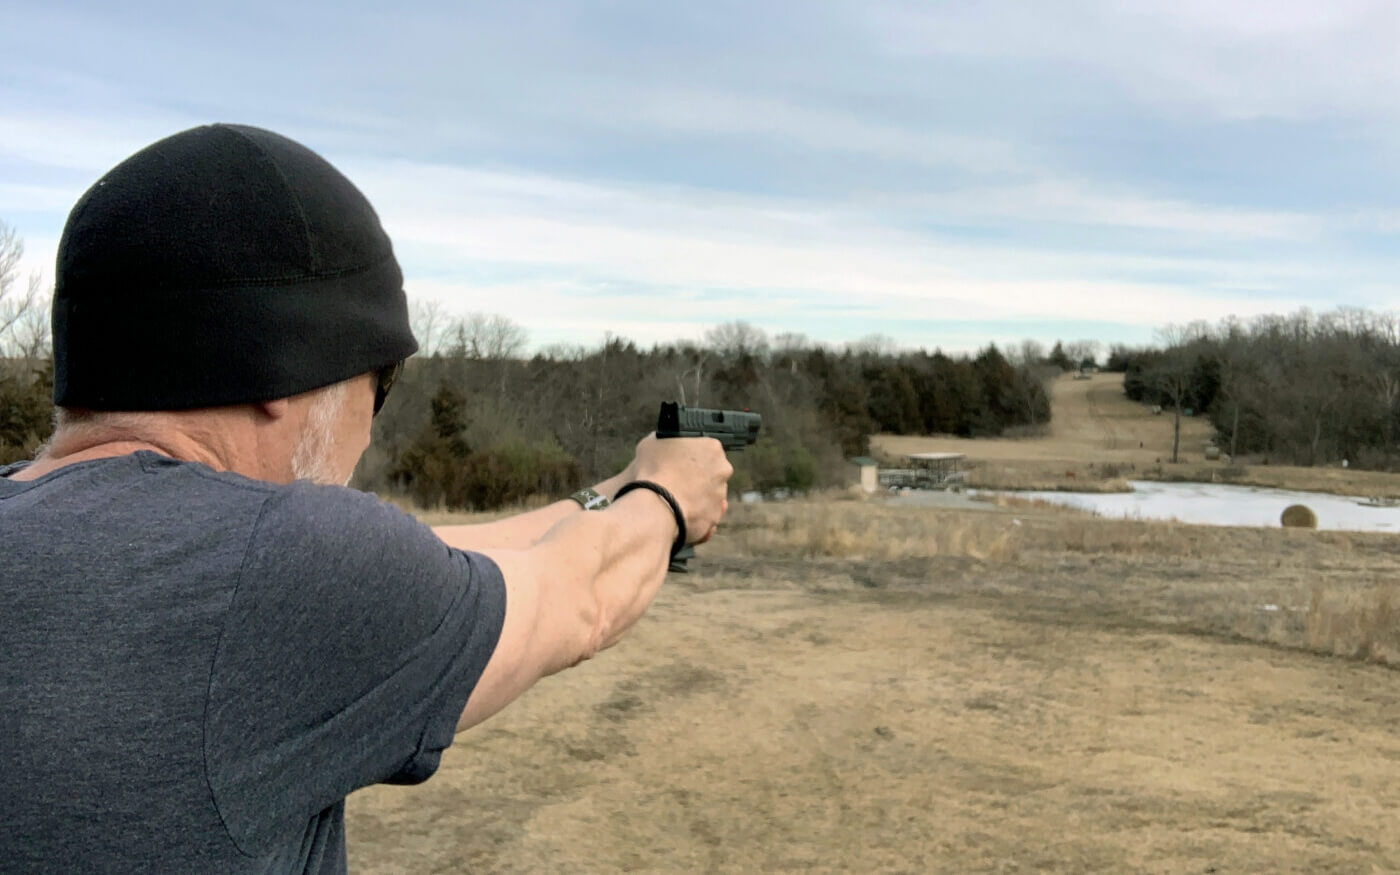 Long distance shooting with pistol